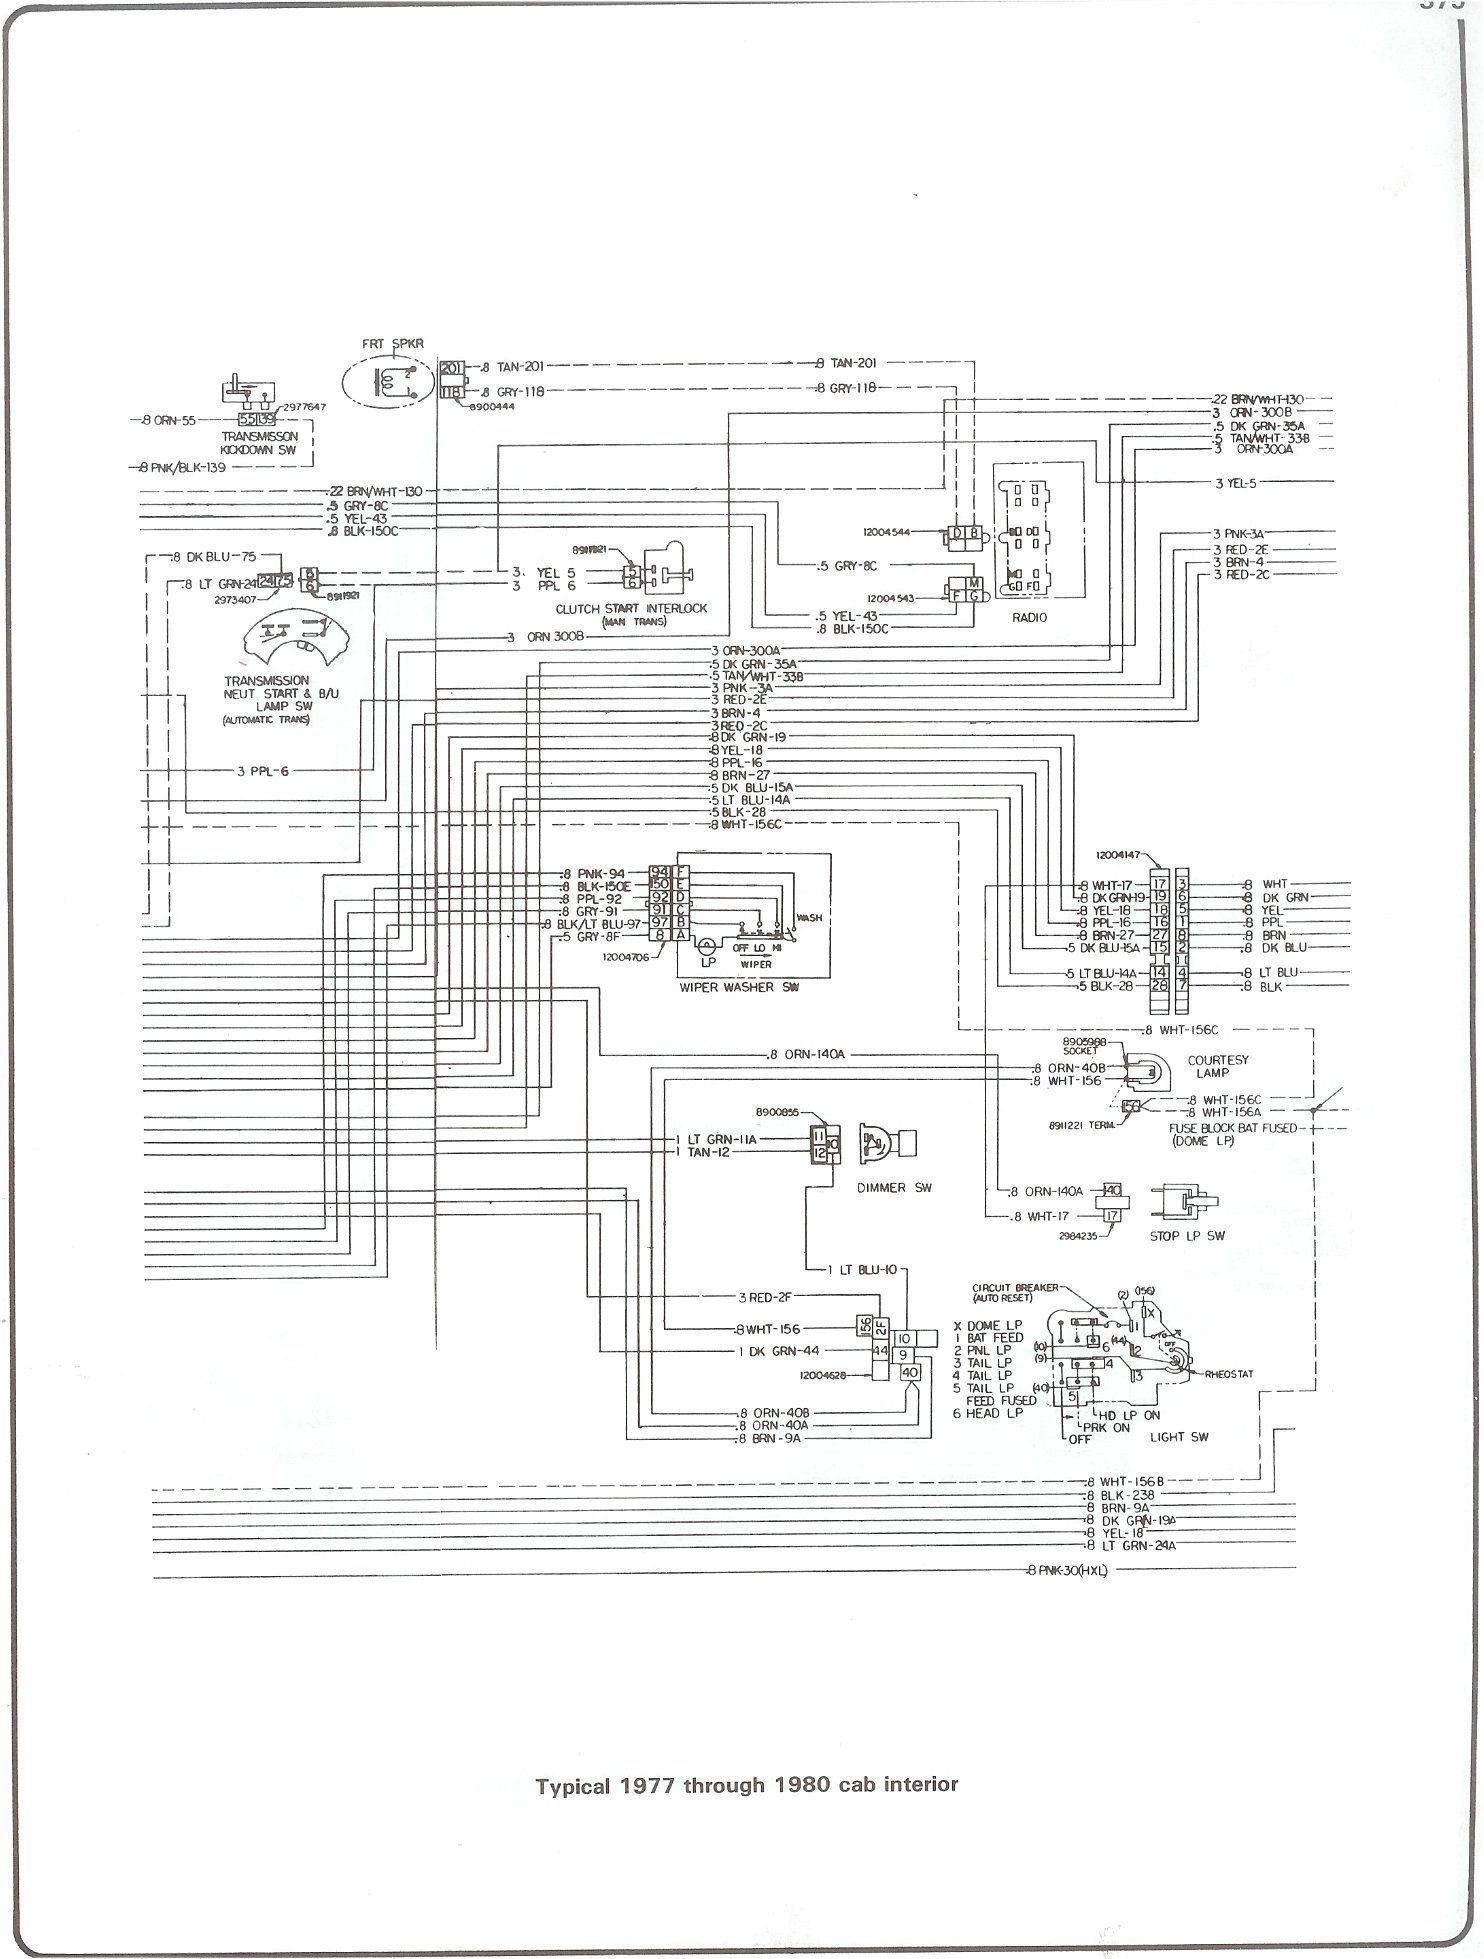 77 80_cab_inter complete 73 87 wiring diagrams 1983 chevy k10 wiring harness at bayanpartner.co